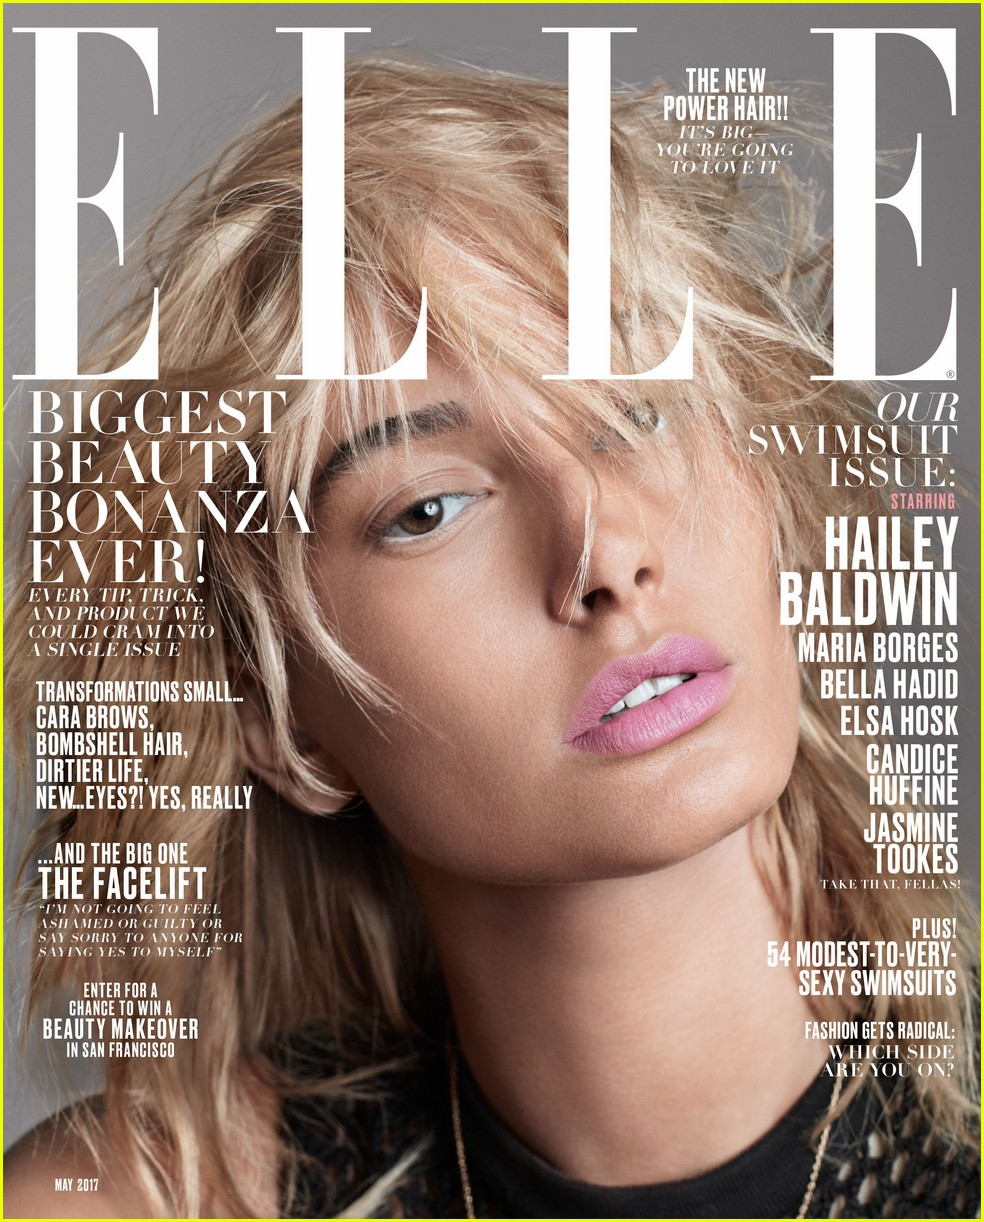 bella hadid hailey baldwin elle cover 02